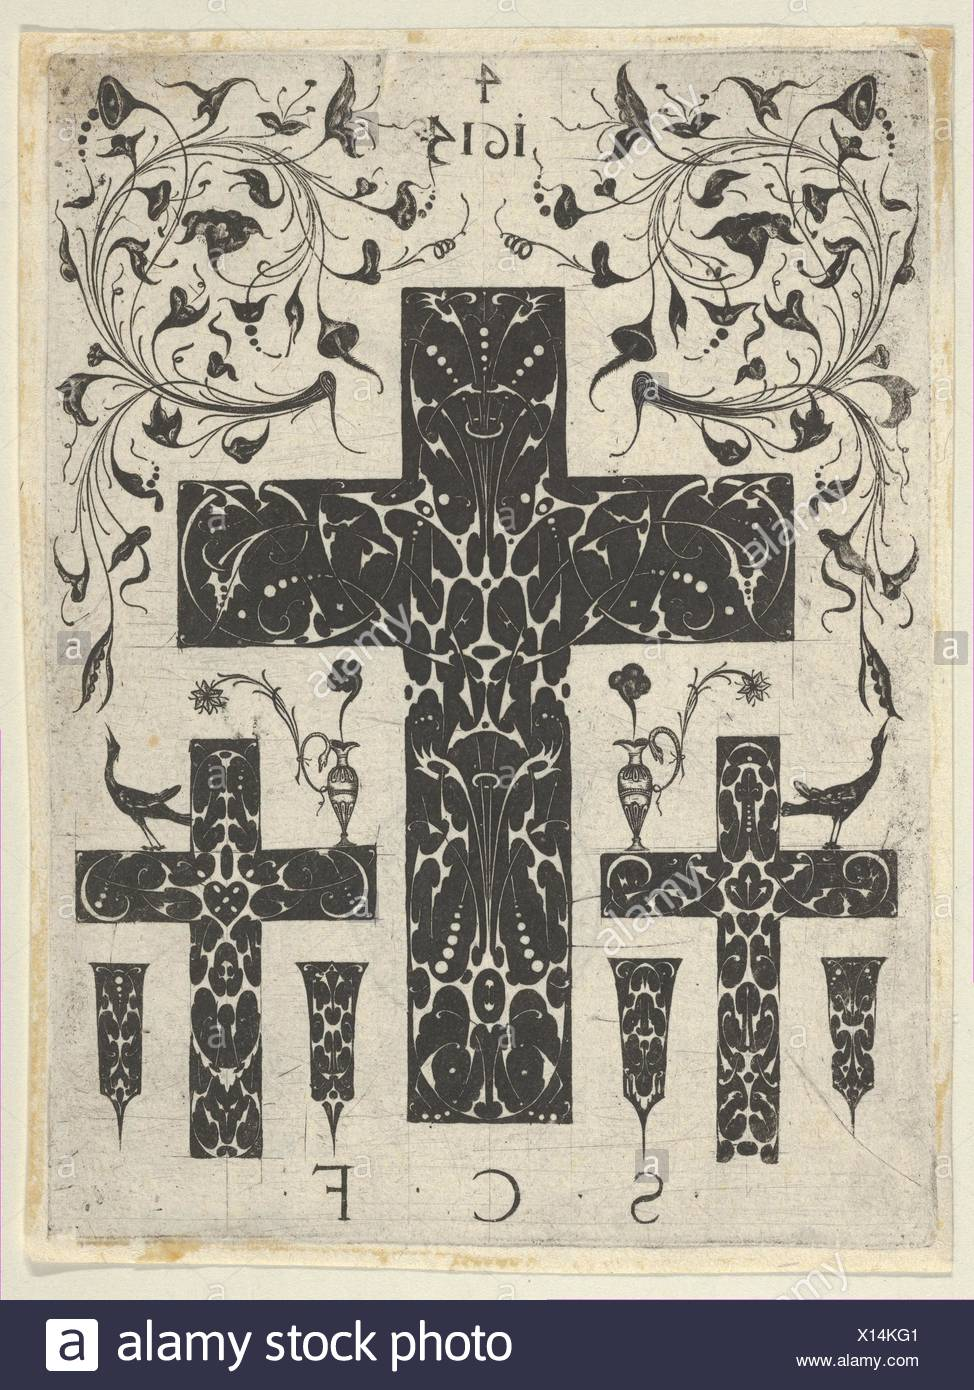 Blackwork Print with Three Crosses and Foliate Scrolls, from a Series of Blackwork Prints for Goldsmiths' Work. Artist: Etienne Carteron (French, - Stock Image